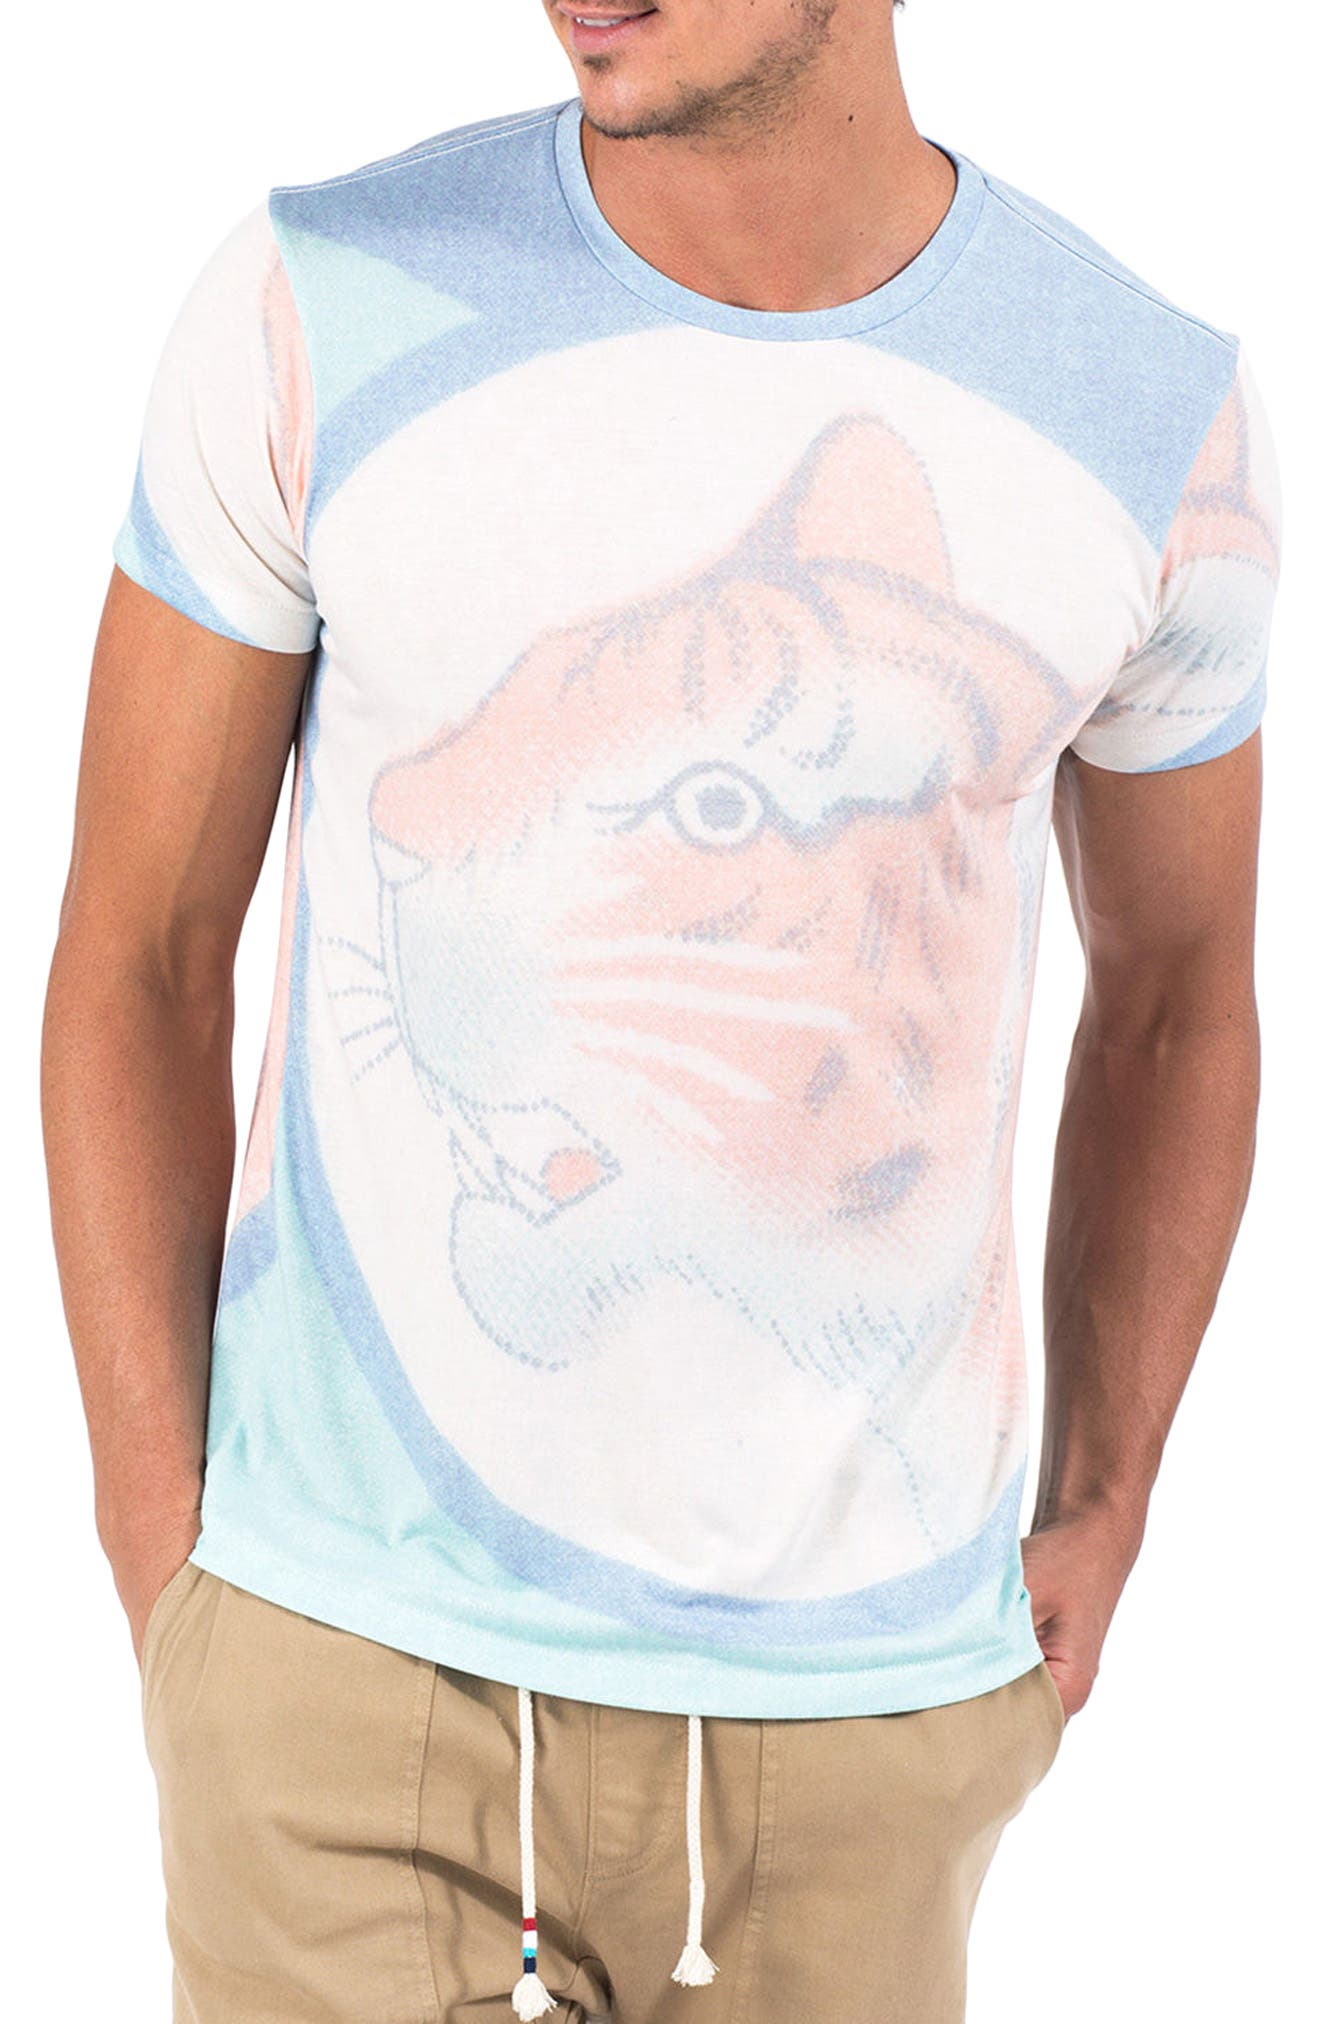 Tigre T-Shirt,                         Main,                         color, 100